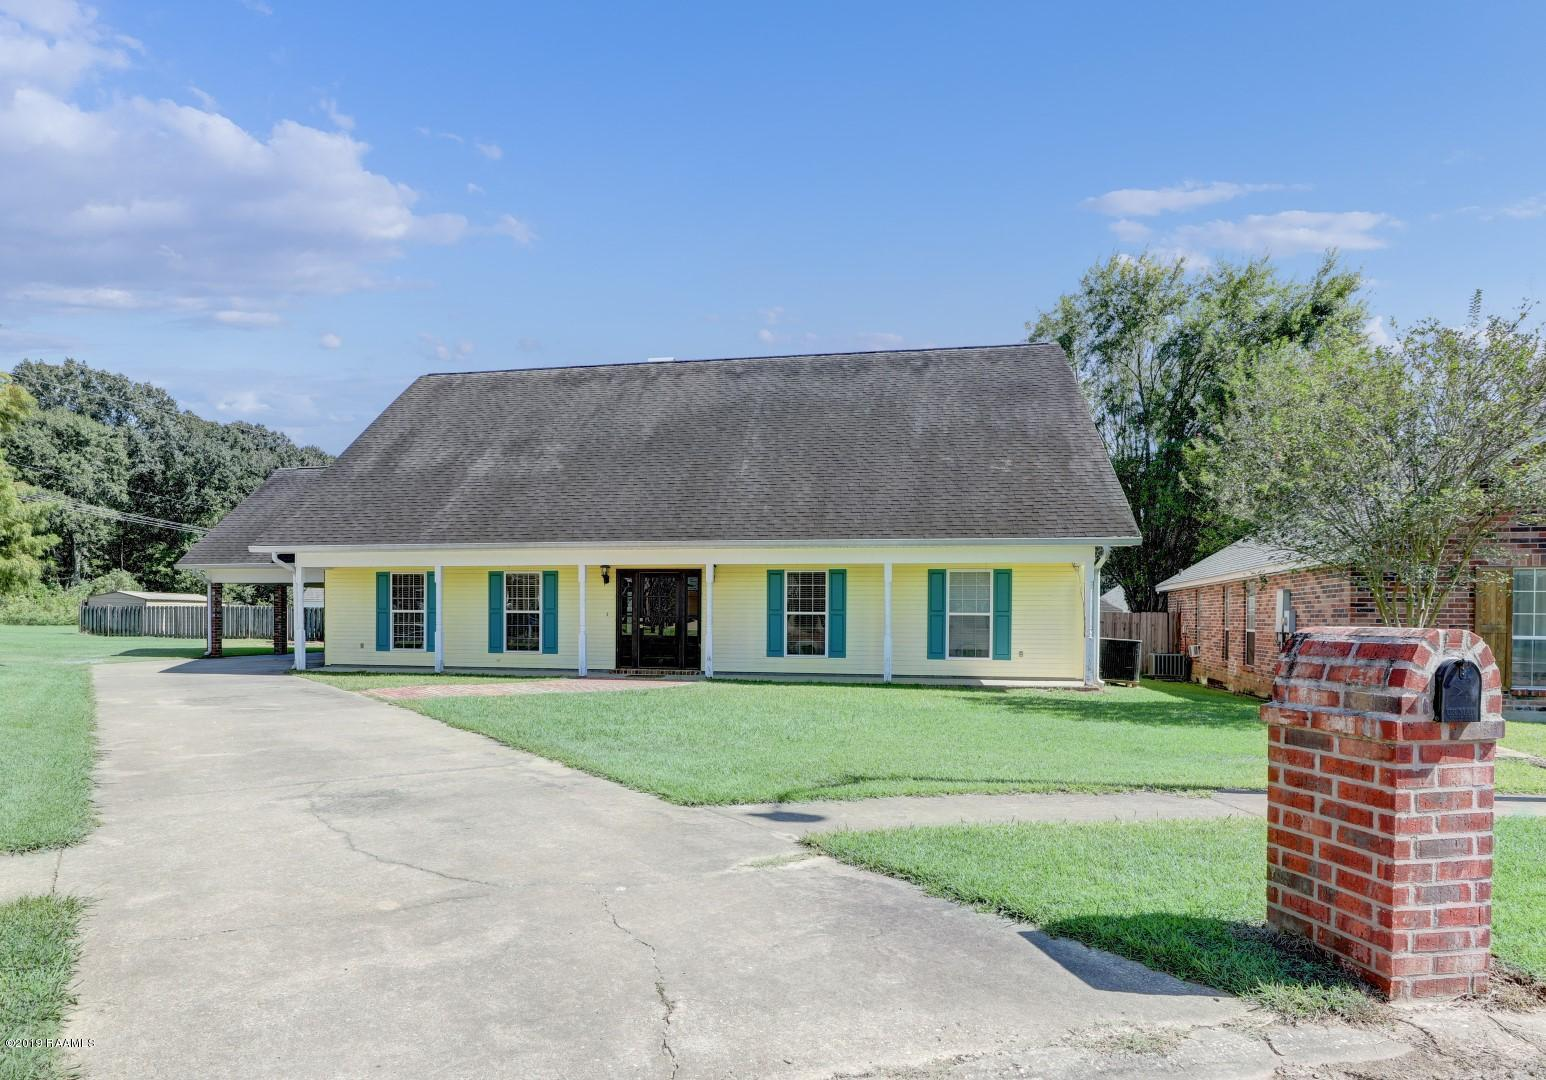 411 Rue Colombe, Carencro, LA 70520